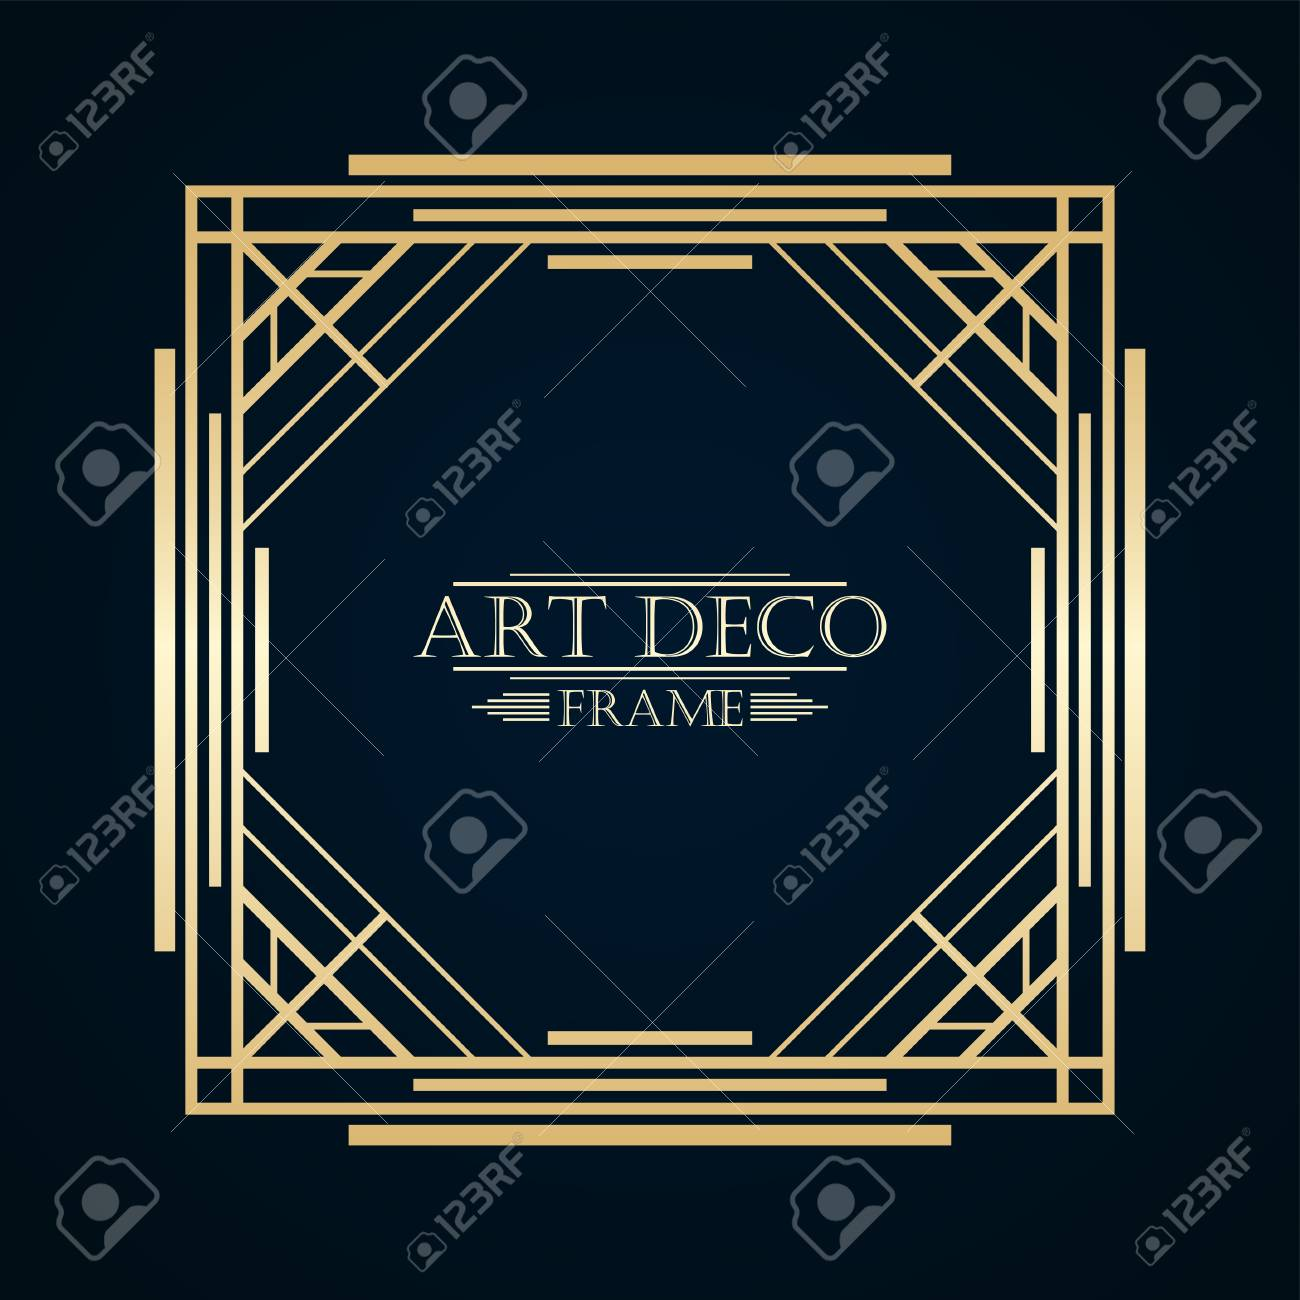 vintage retro art deco frame with text and golden gradient template